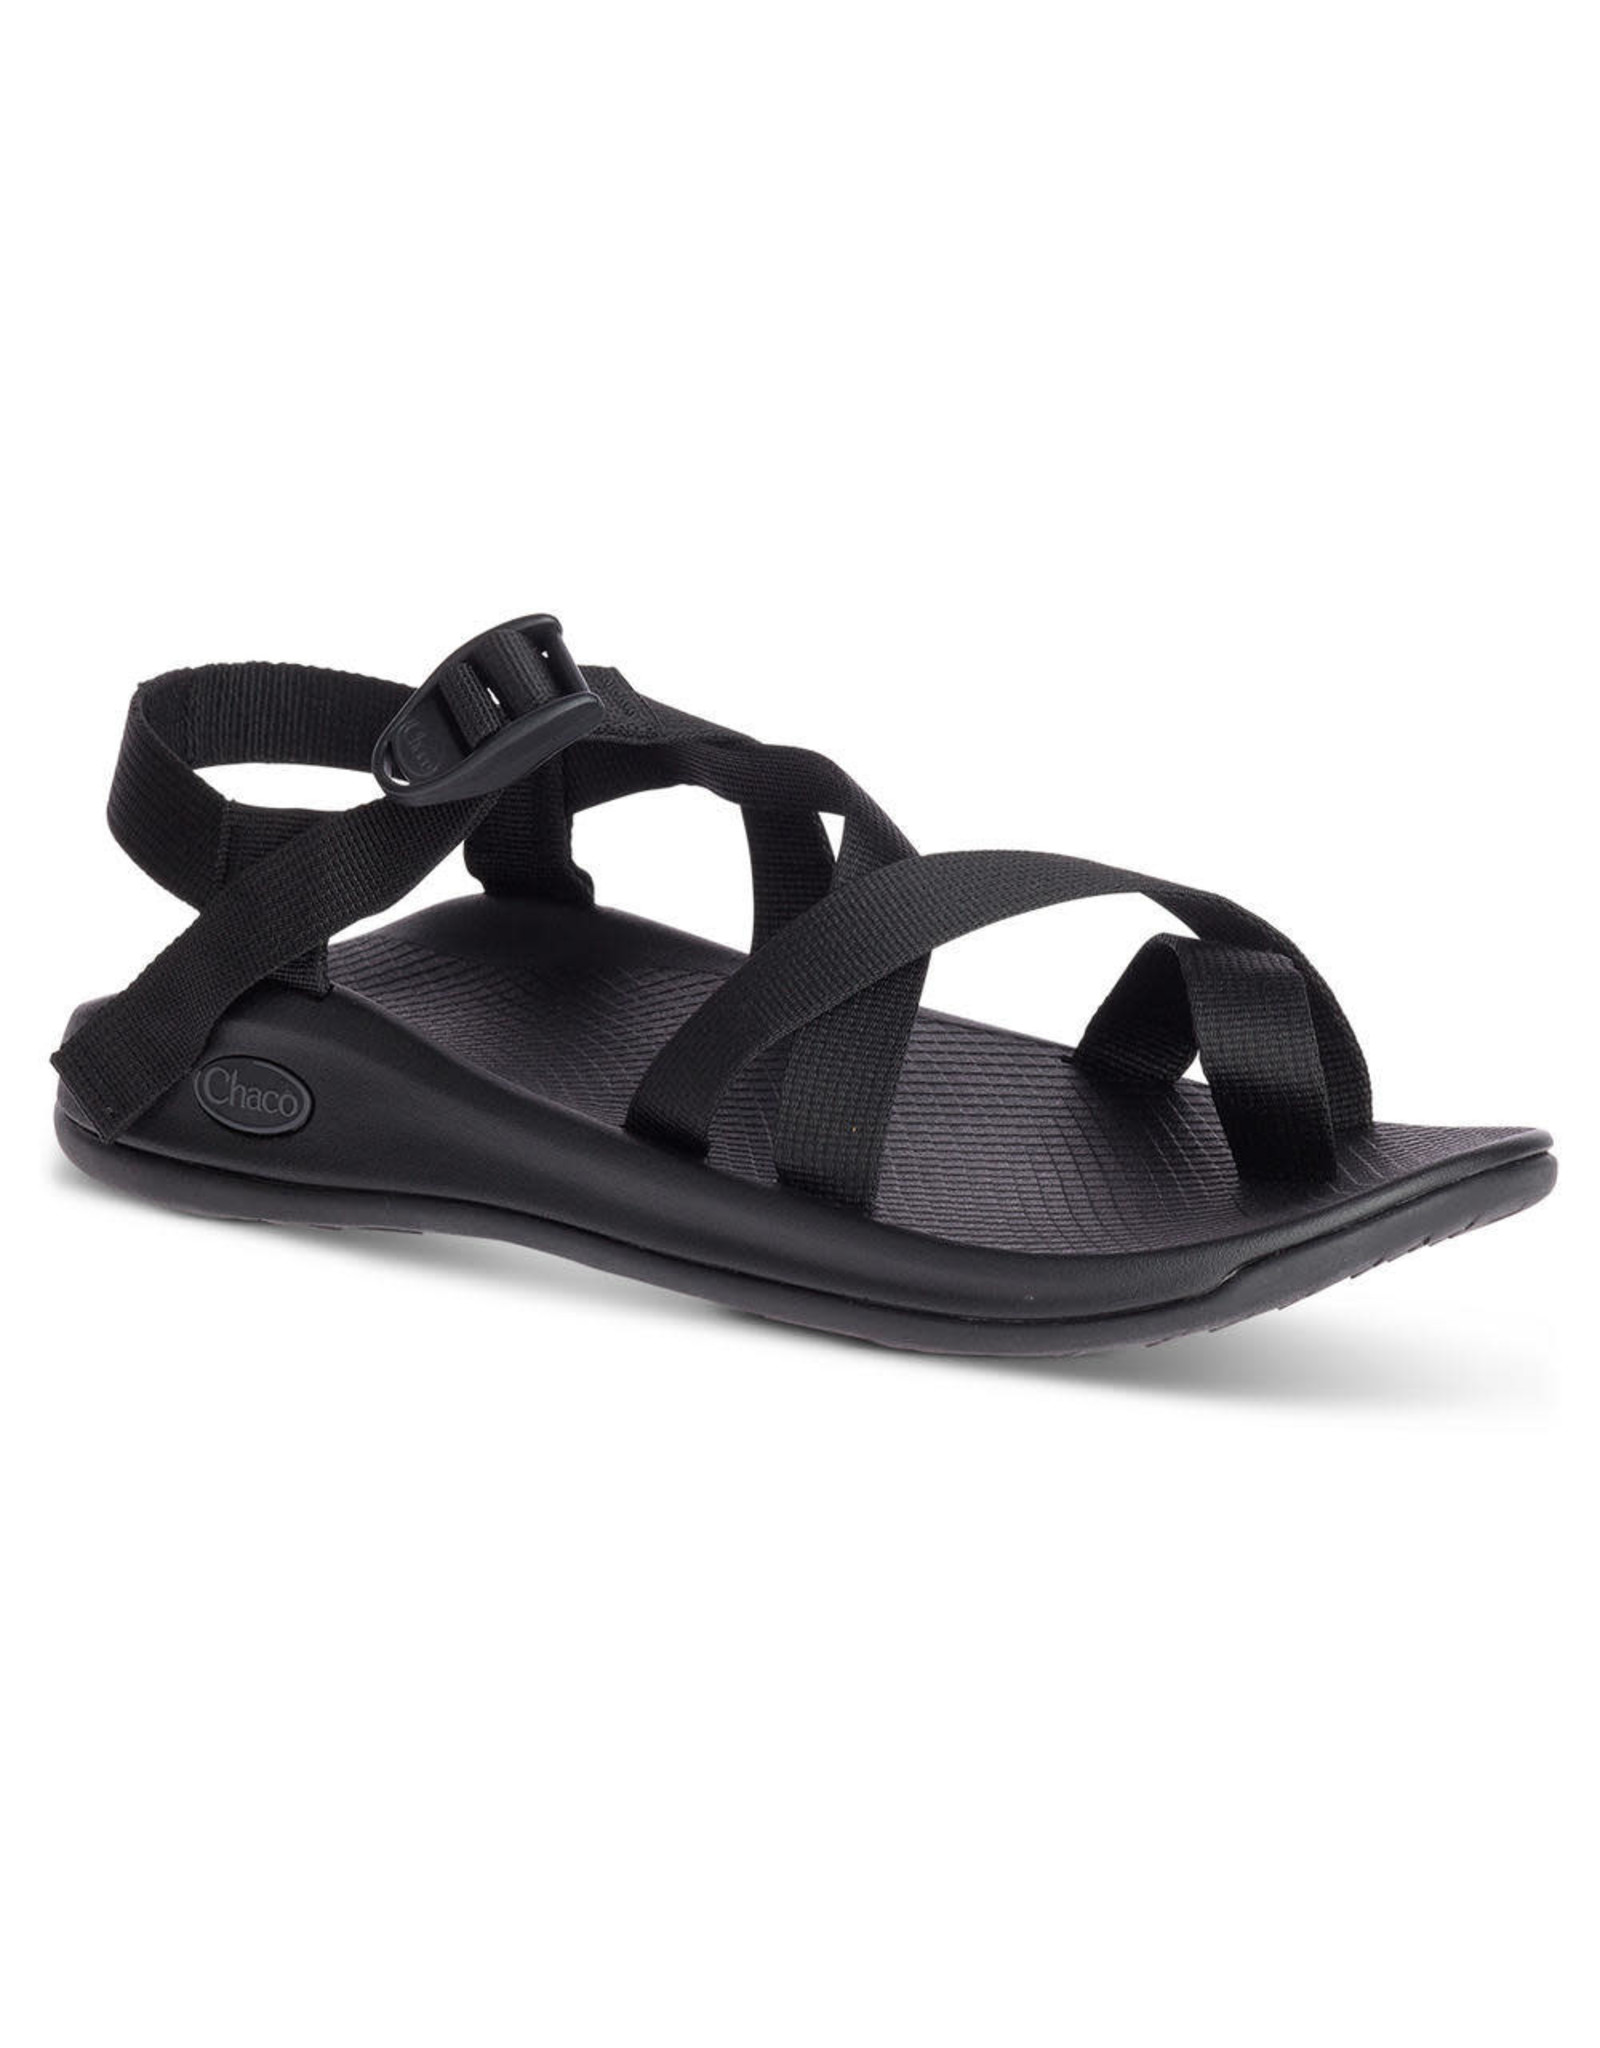 Chaco Men's Z BOULDER 2 / SOLID BLACK